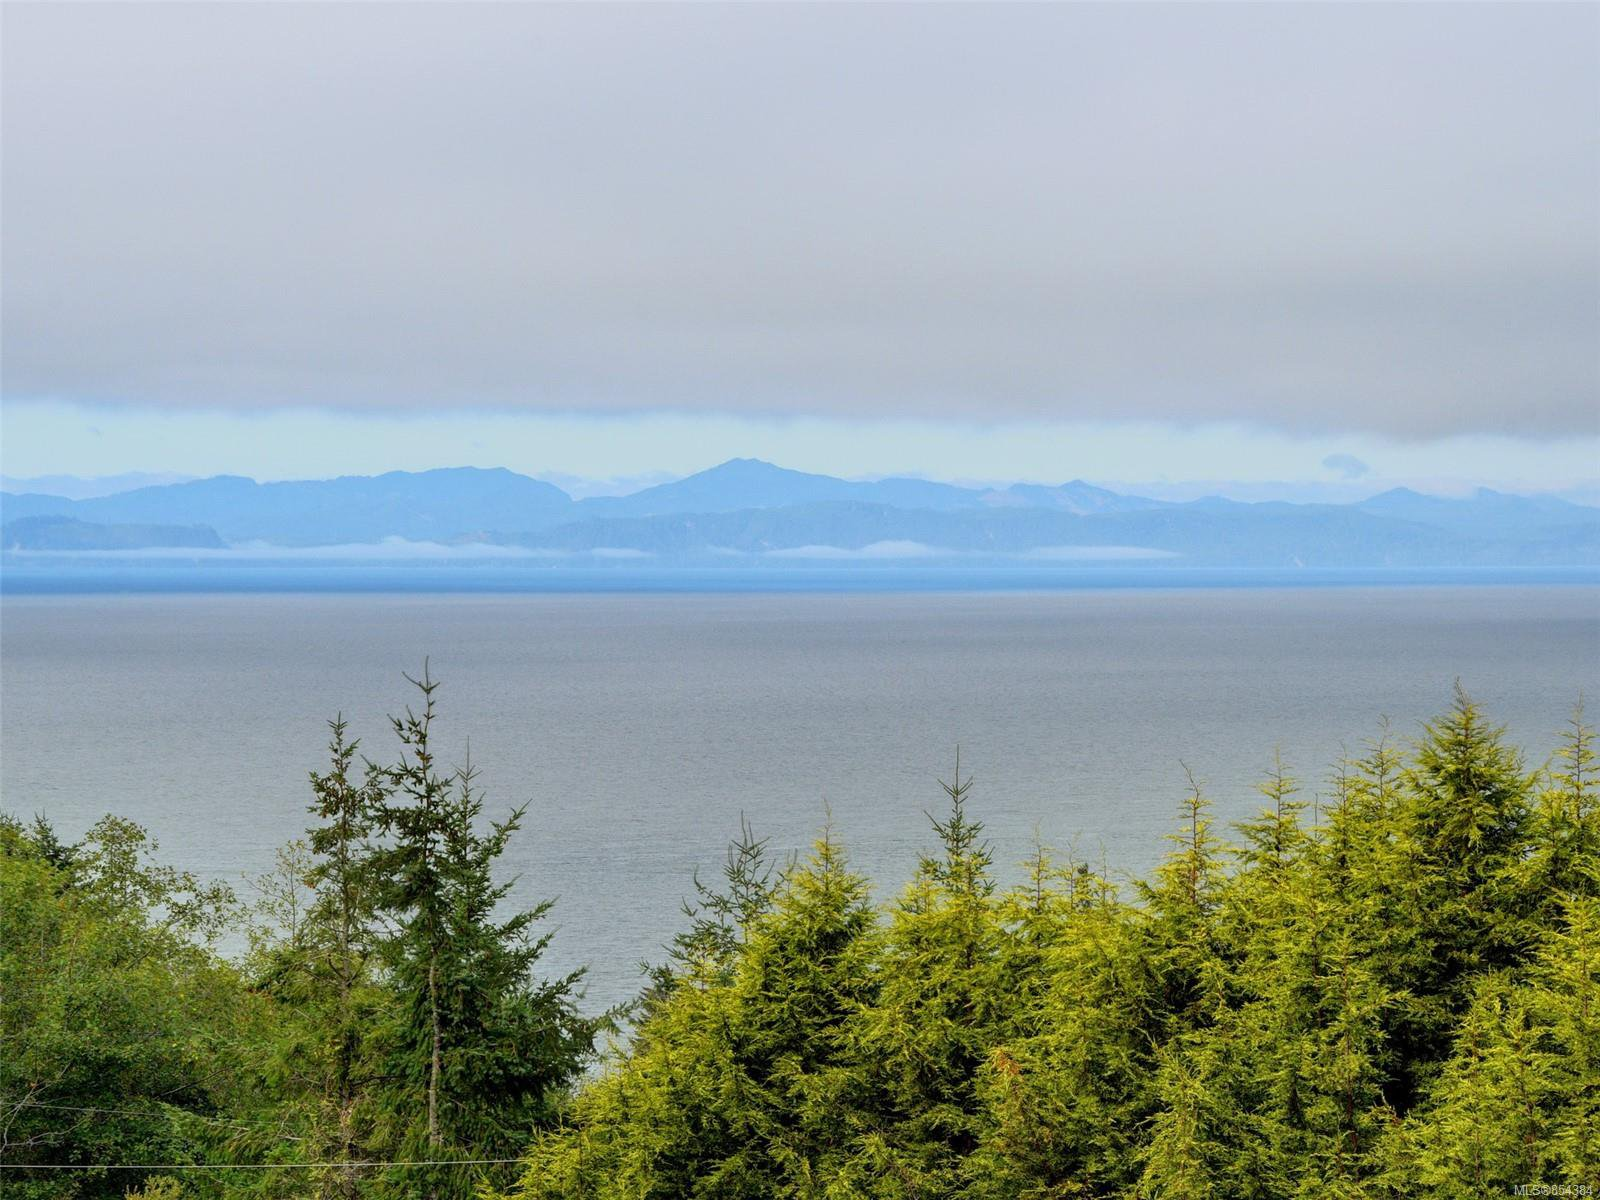 Main Photo: 4475 Otter Point Rd in : Sk Otter Point House for sale (Sooke)  : MLS®# 854384